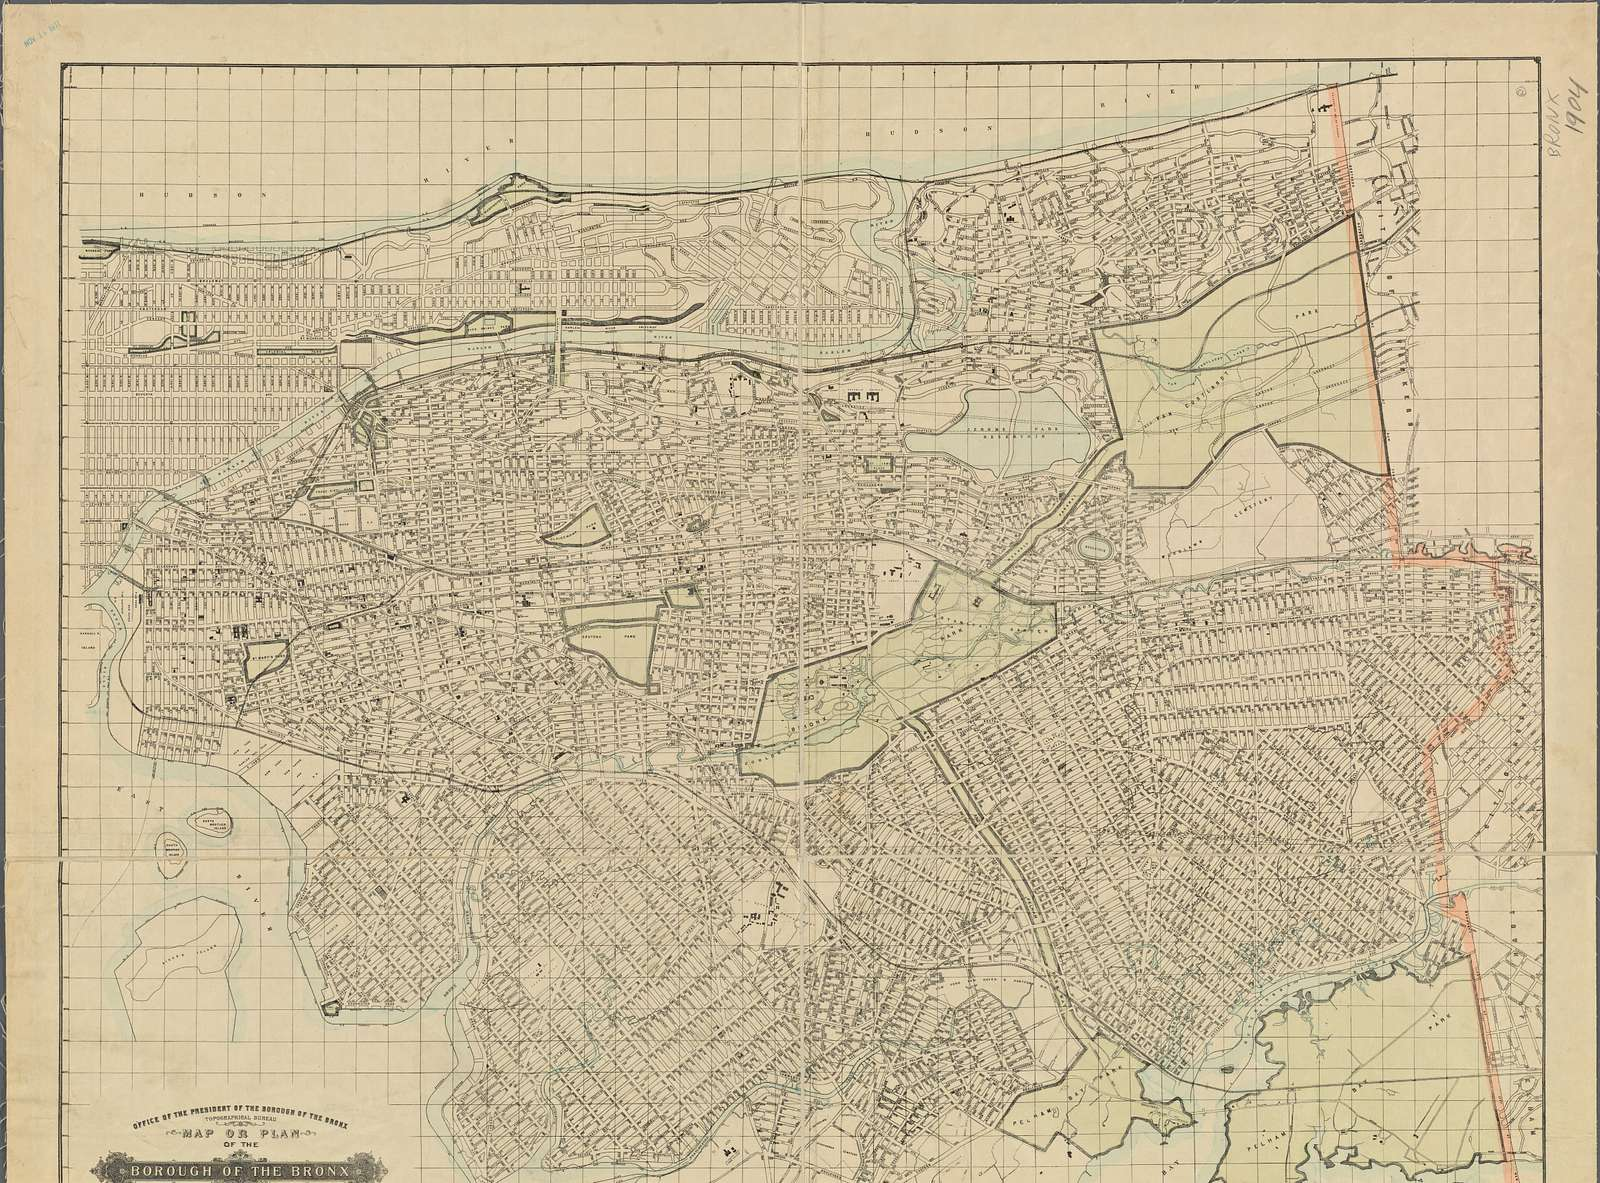 Map or plan of the Borough of the Bronx, City of New York, showing the system of house numbers.